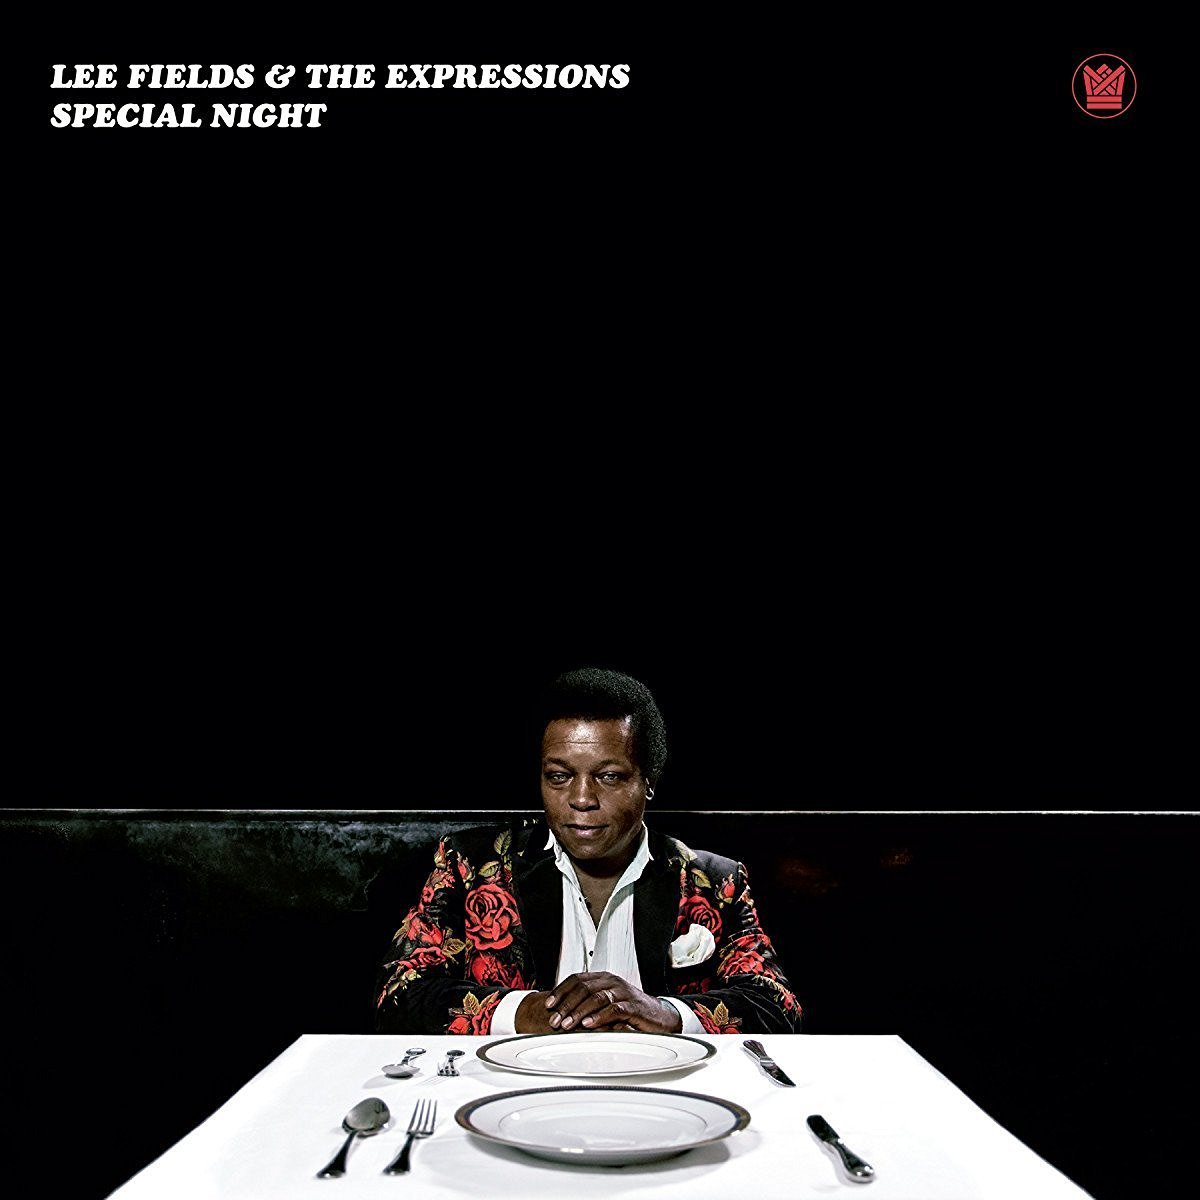 Lee-Fields-The-Expressions-Special-Night cover